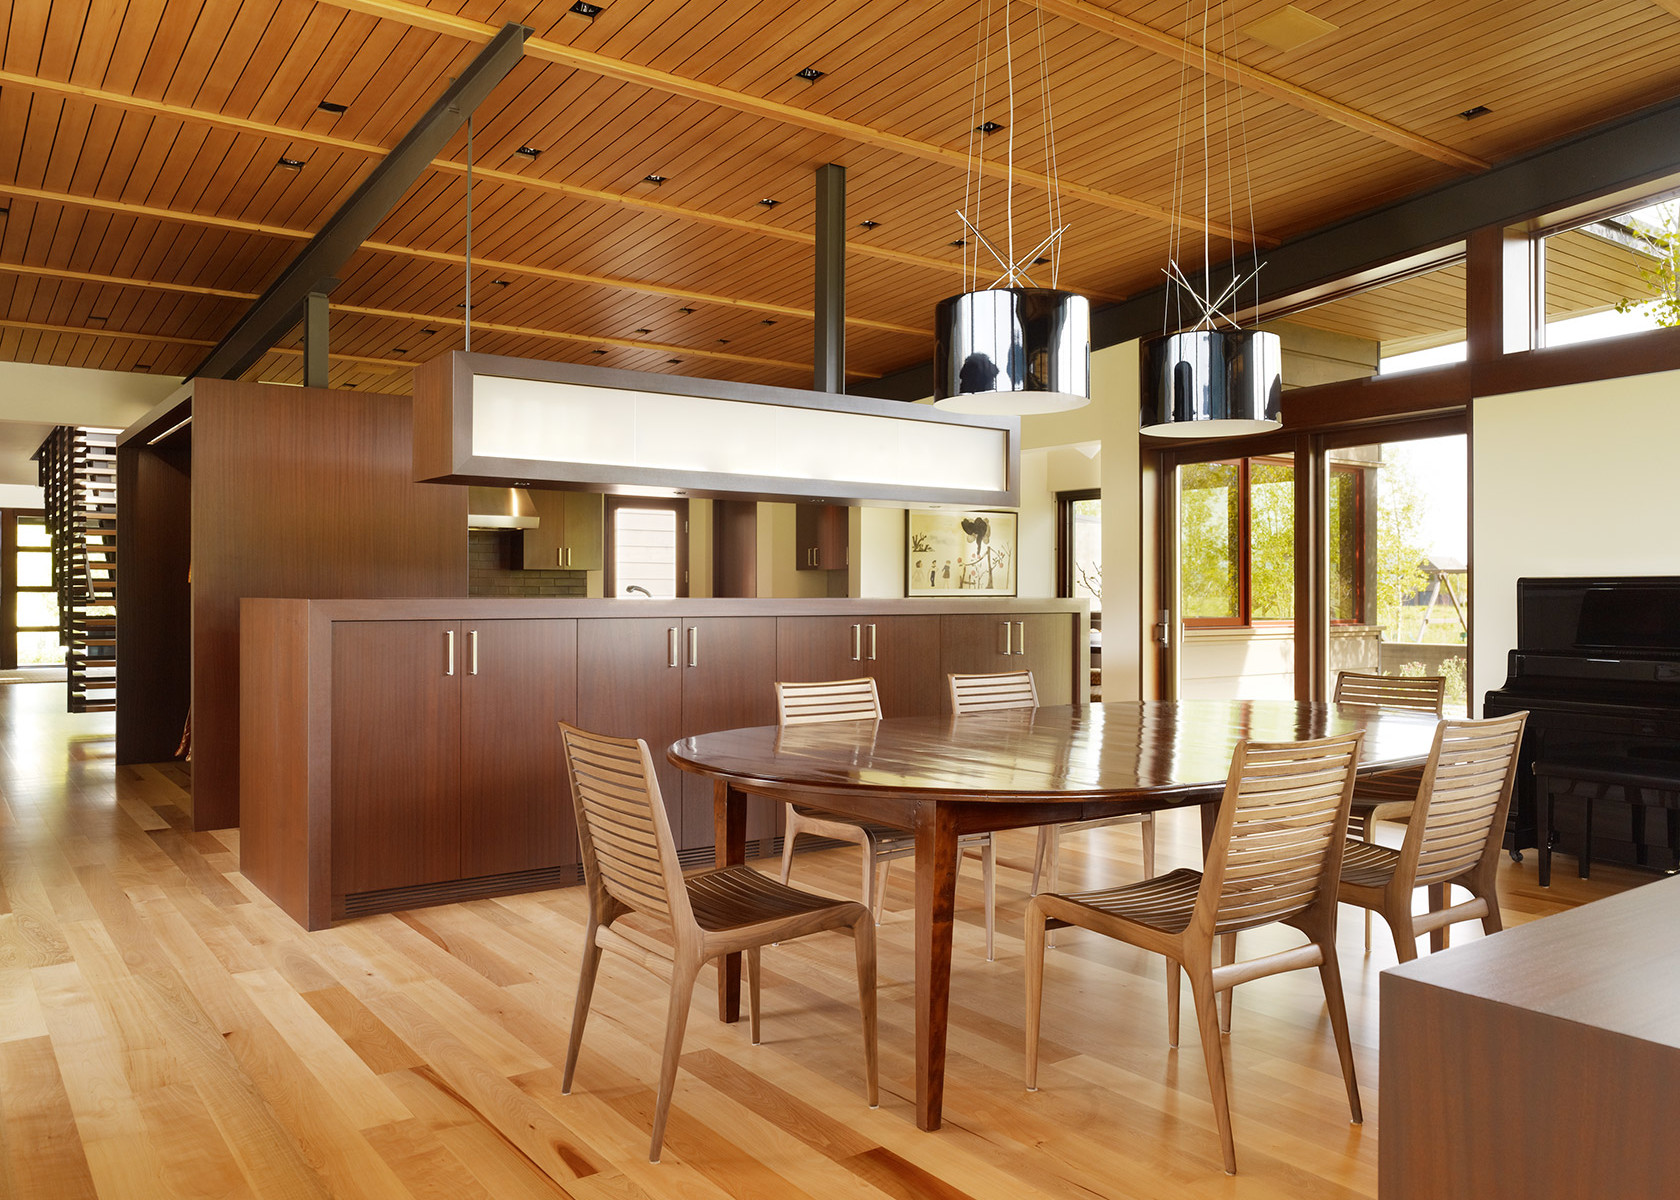 Charmant Top 15 Best Wooden Ceiling Design Ideas. Nice Light Dining Room In The  Studio First